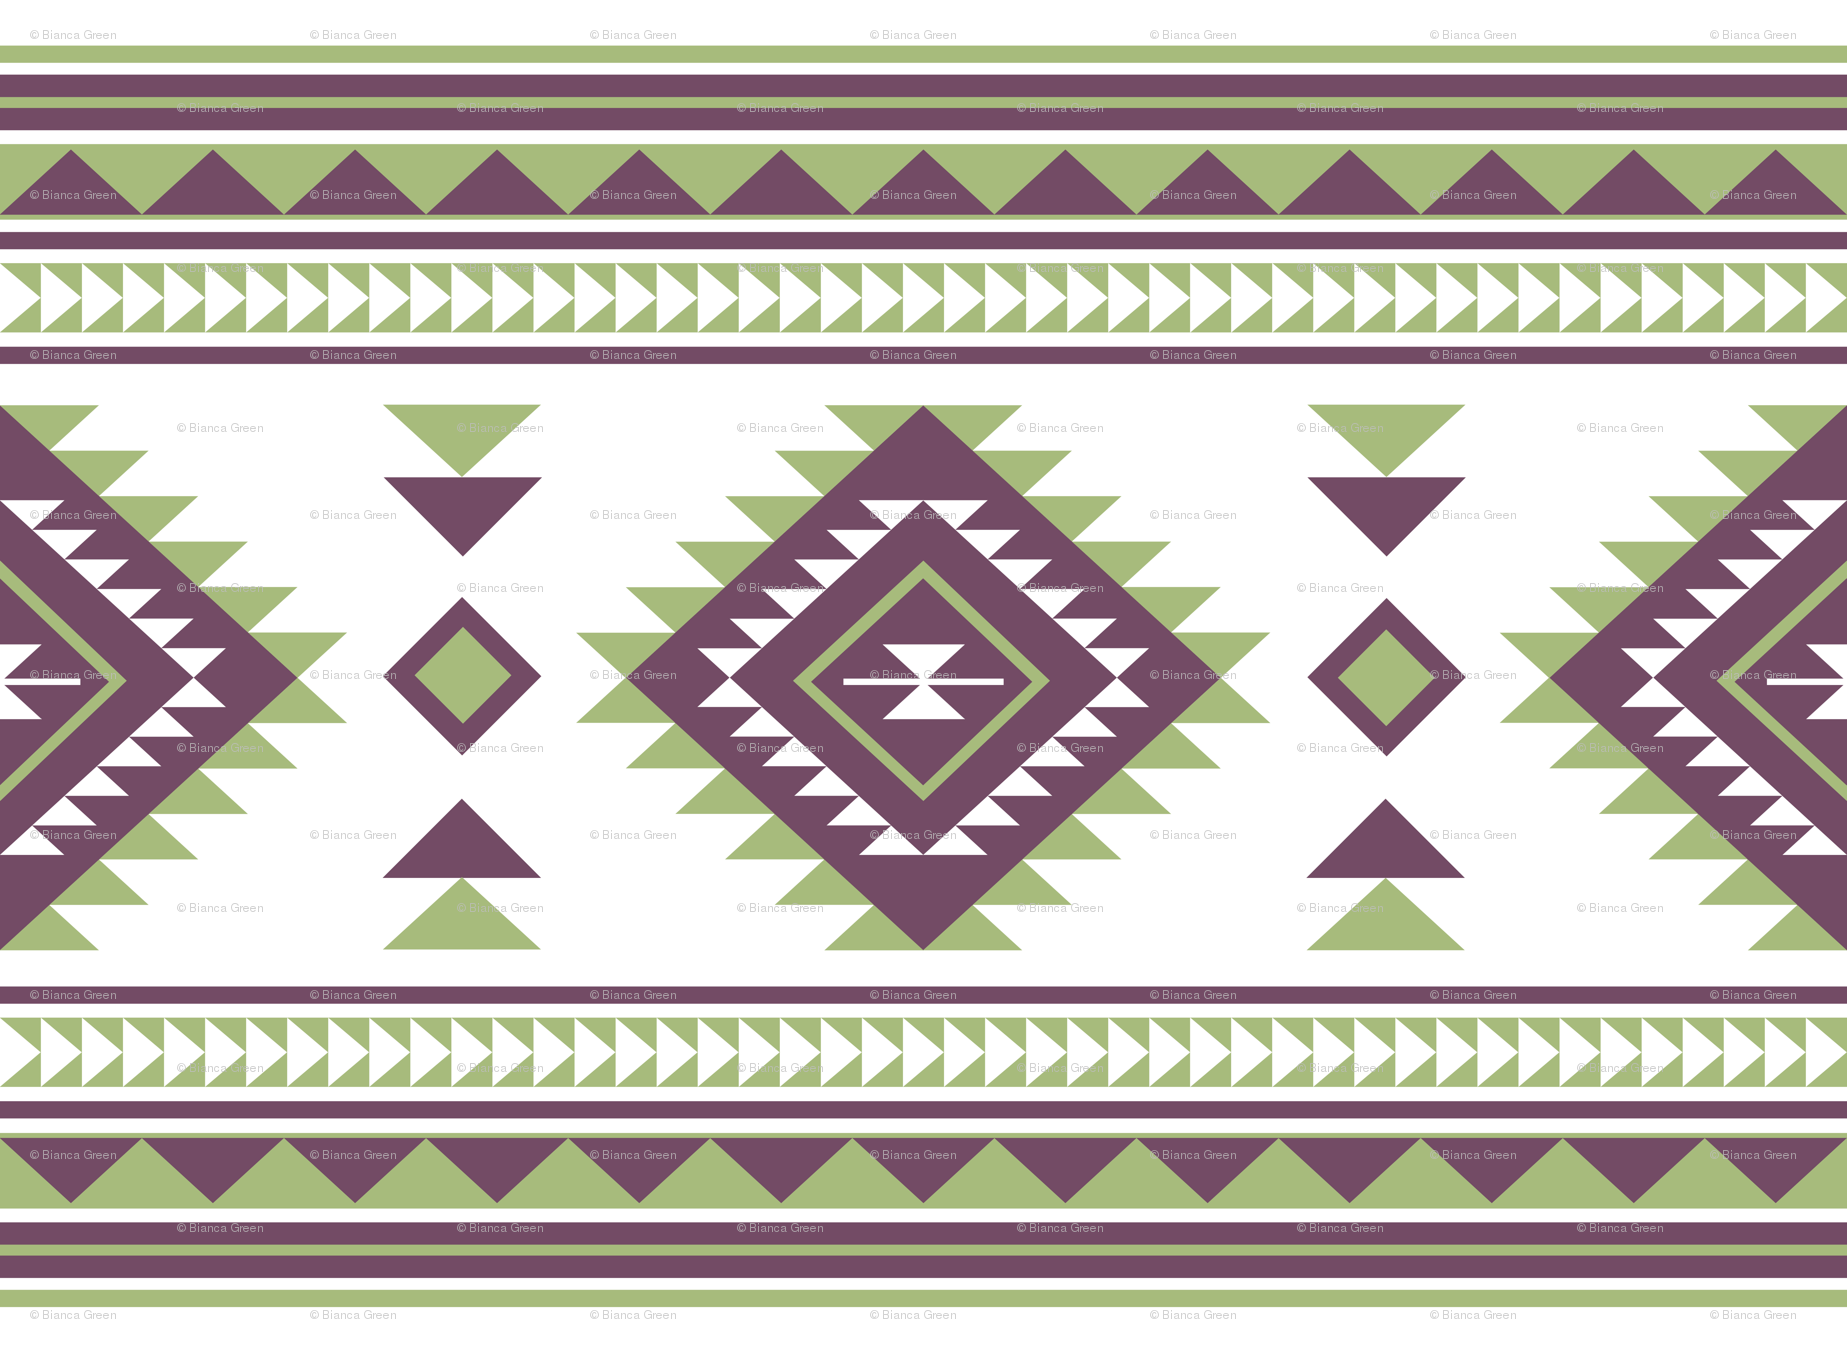 native art wallpaper border - photo #23